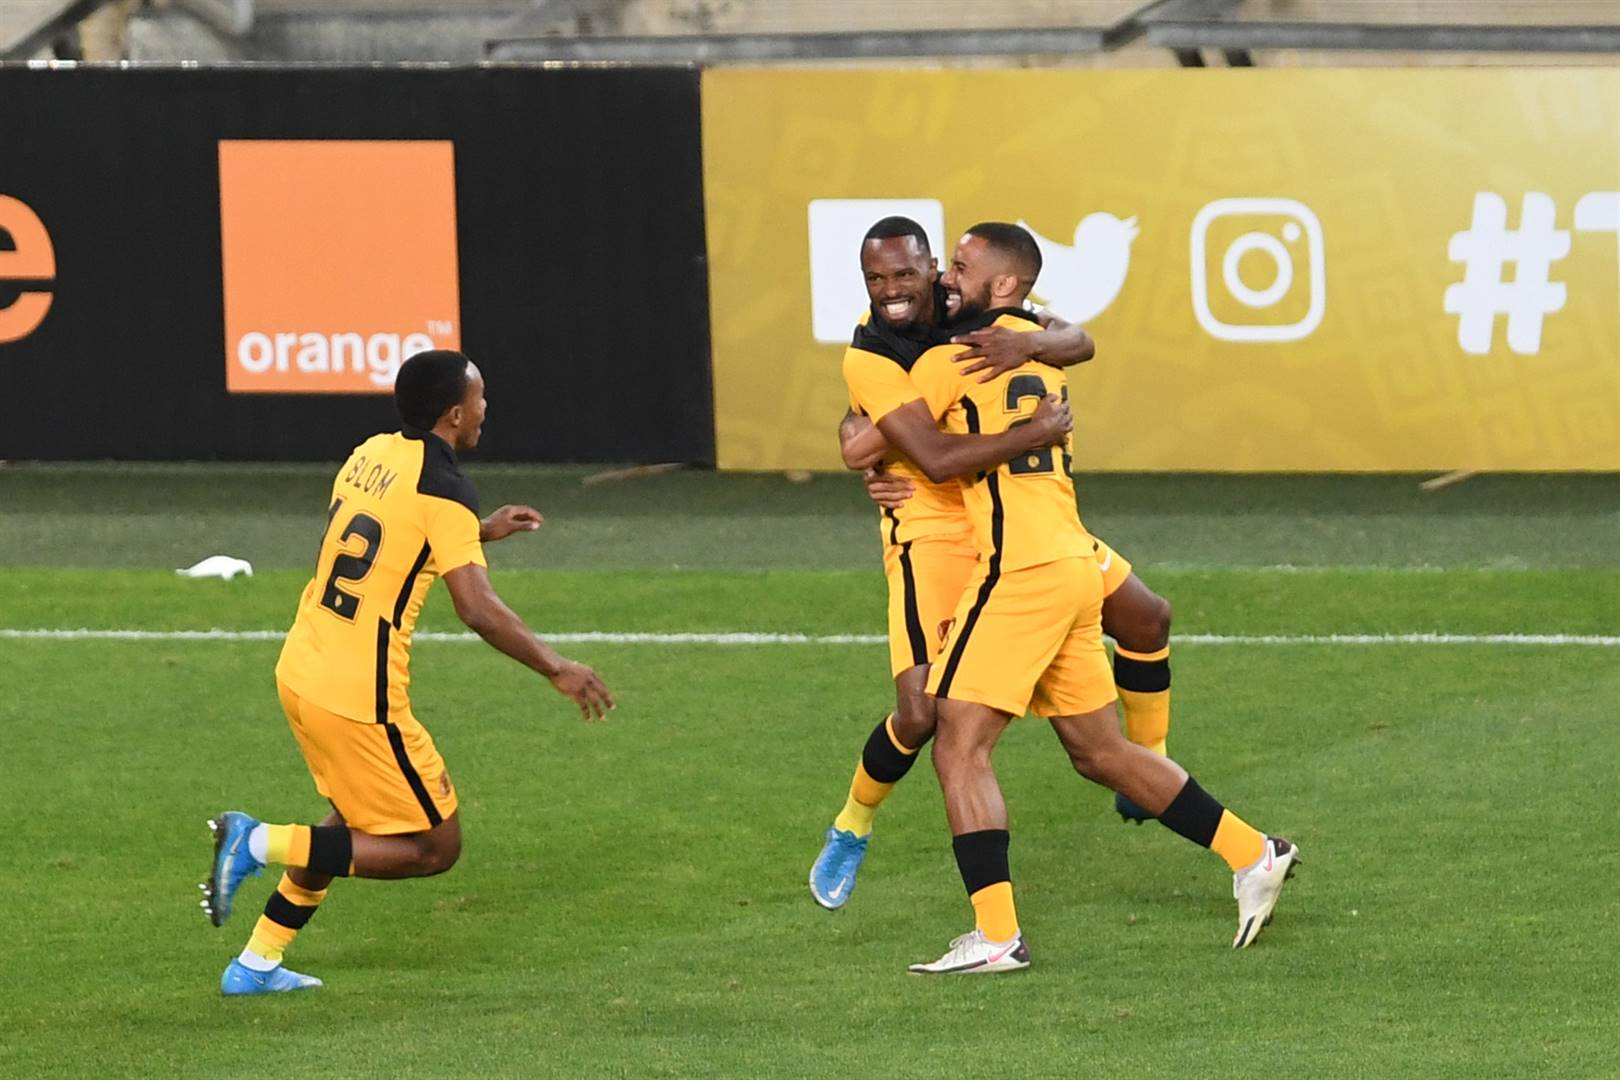 Bernard Parker celebrates scoring the goal that handed Kaizer Chiefs a 1-0 win over Wydad Athletic in their CAF Champions League game at FNB Stadium on Saturday. Picture: Lefty Shivambu / Gallo Images